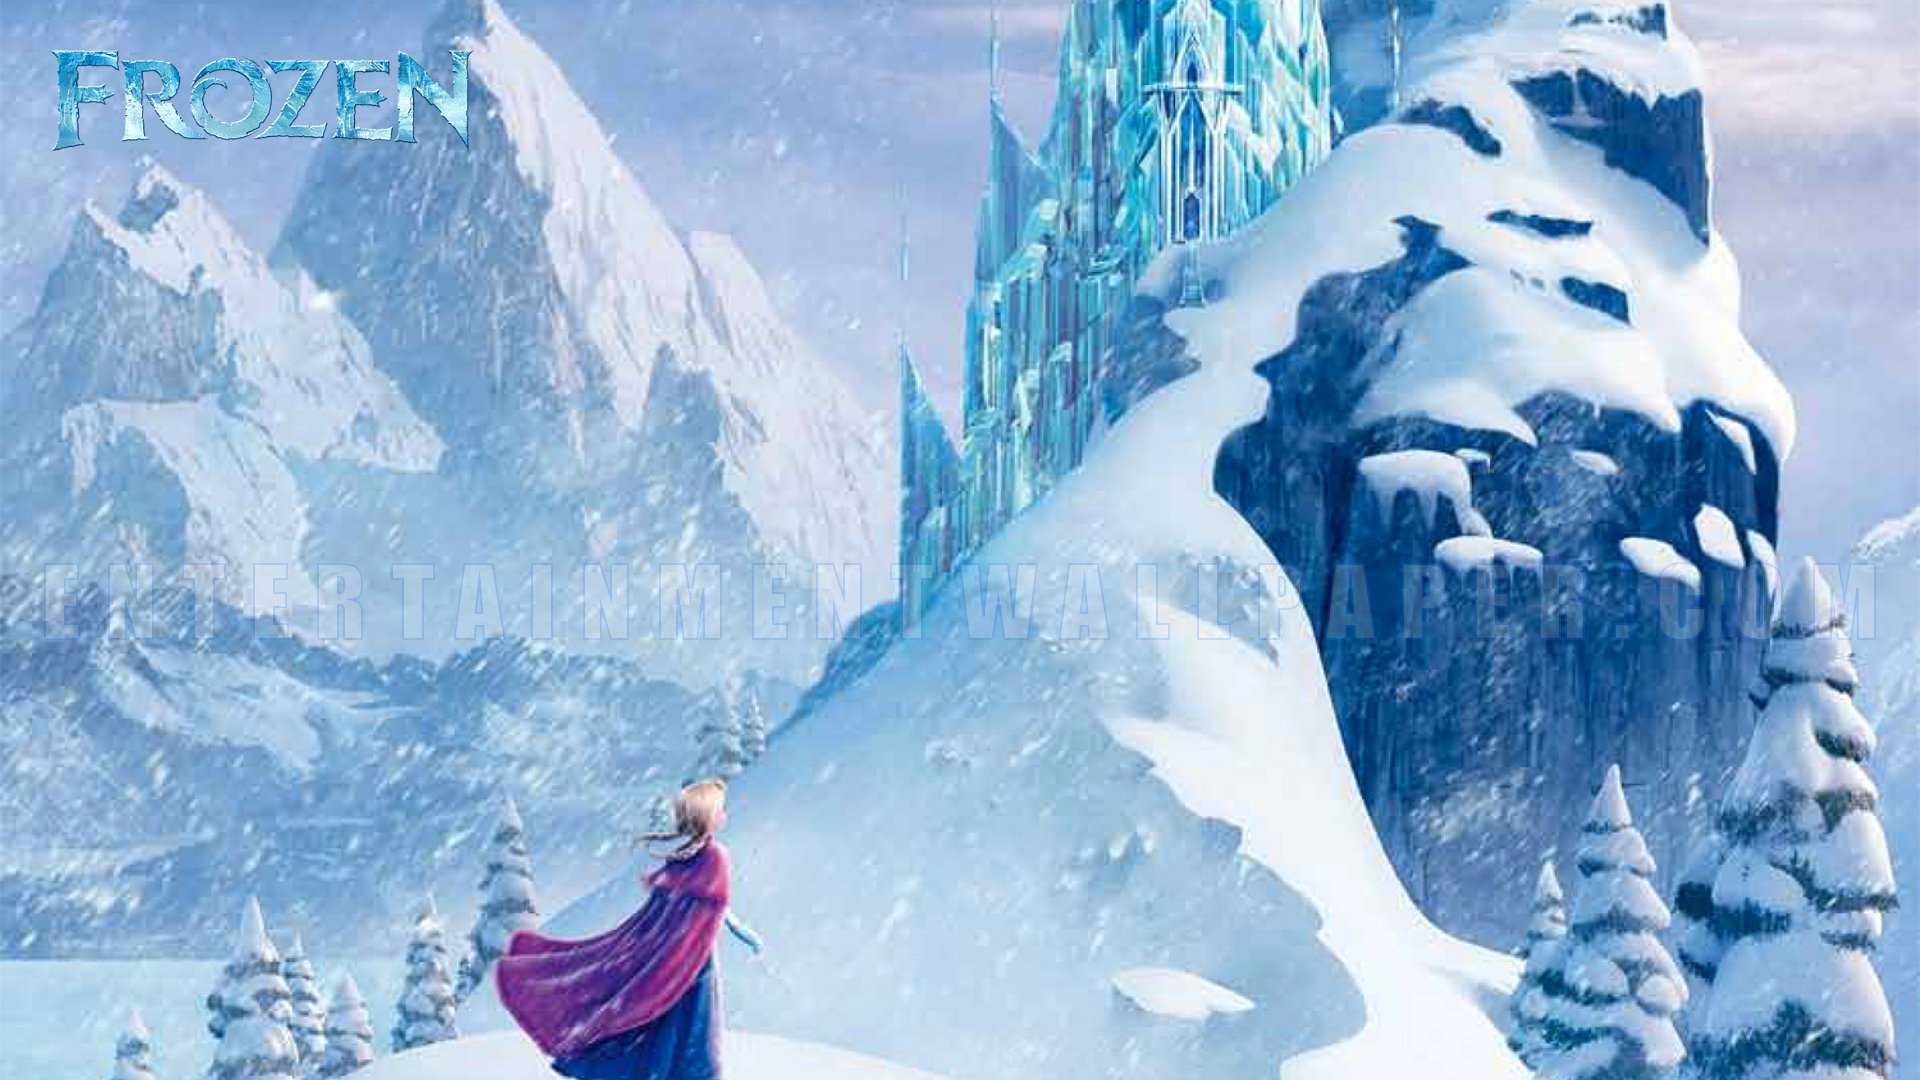 Frozen images Frozen HD wallpaper and background photos ...